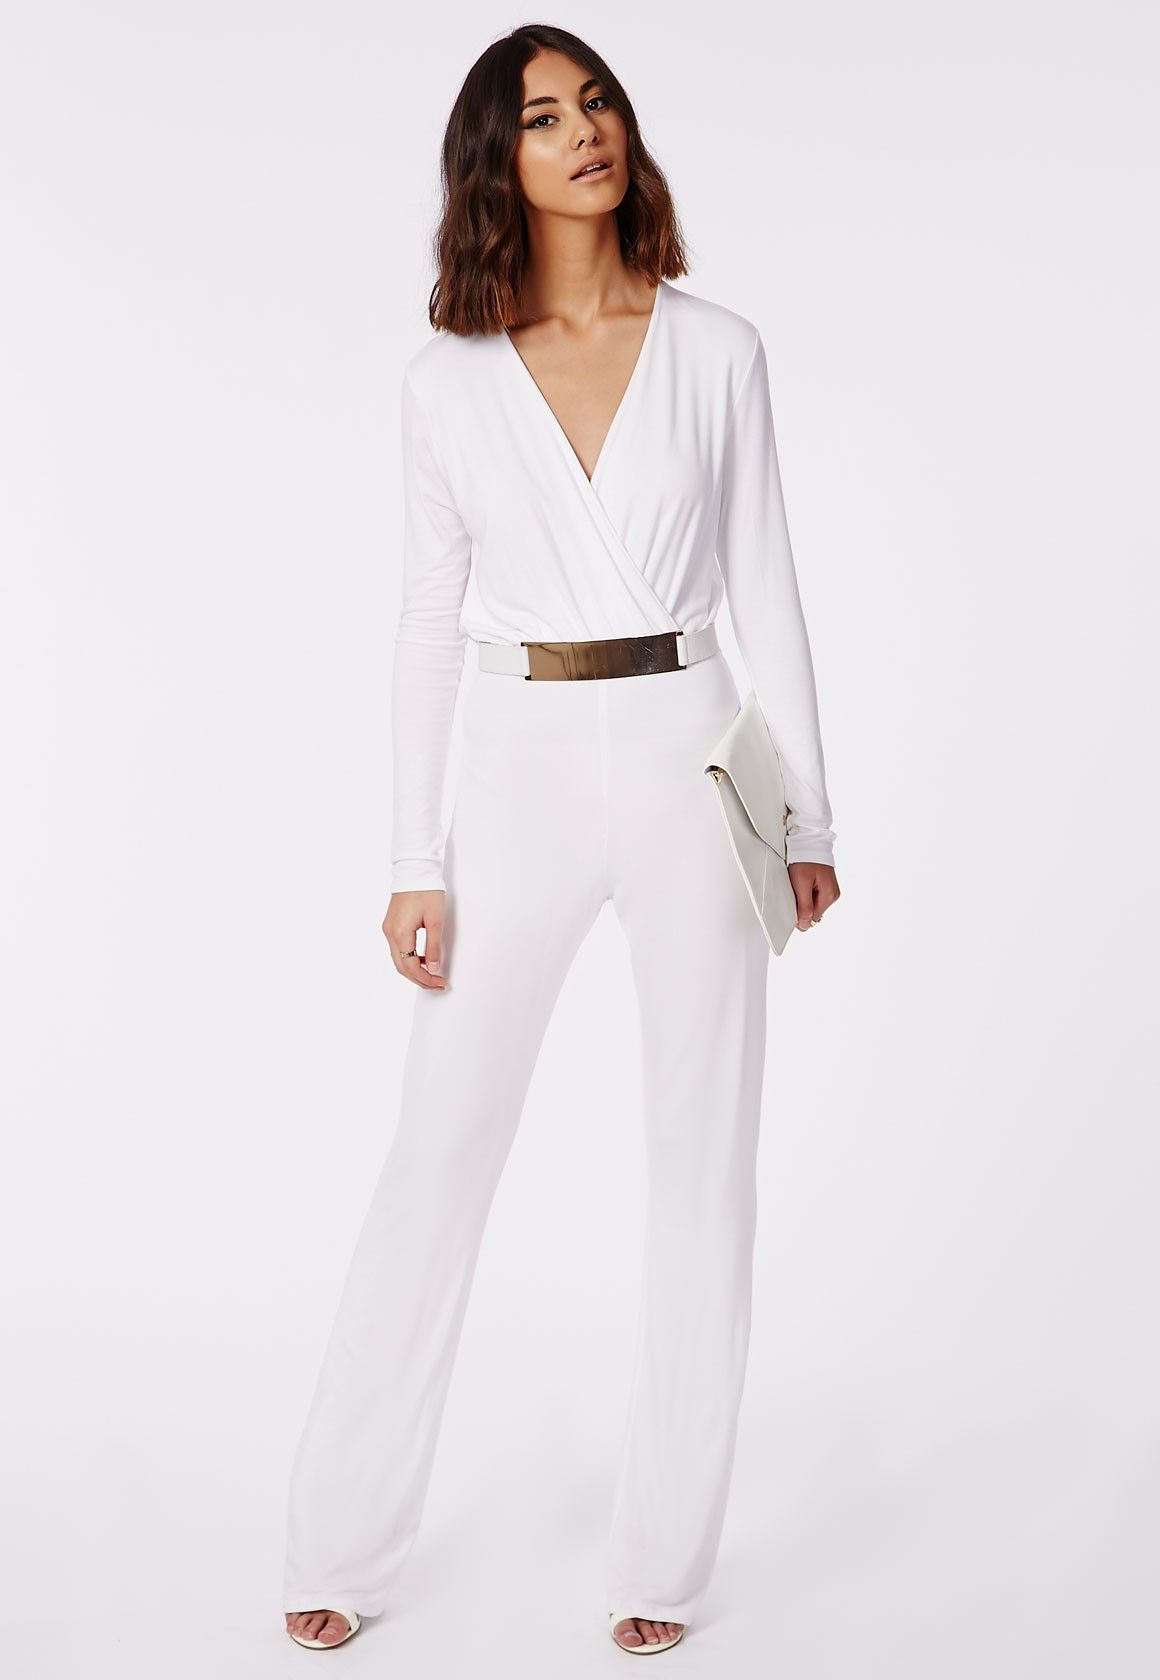 ad45493bc6c6 Cute white jumpsuit for formal events